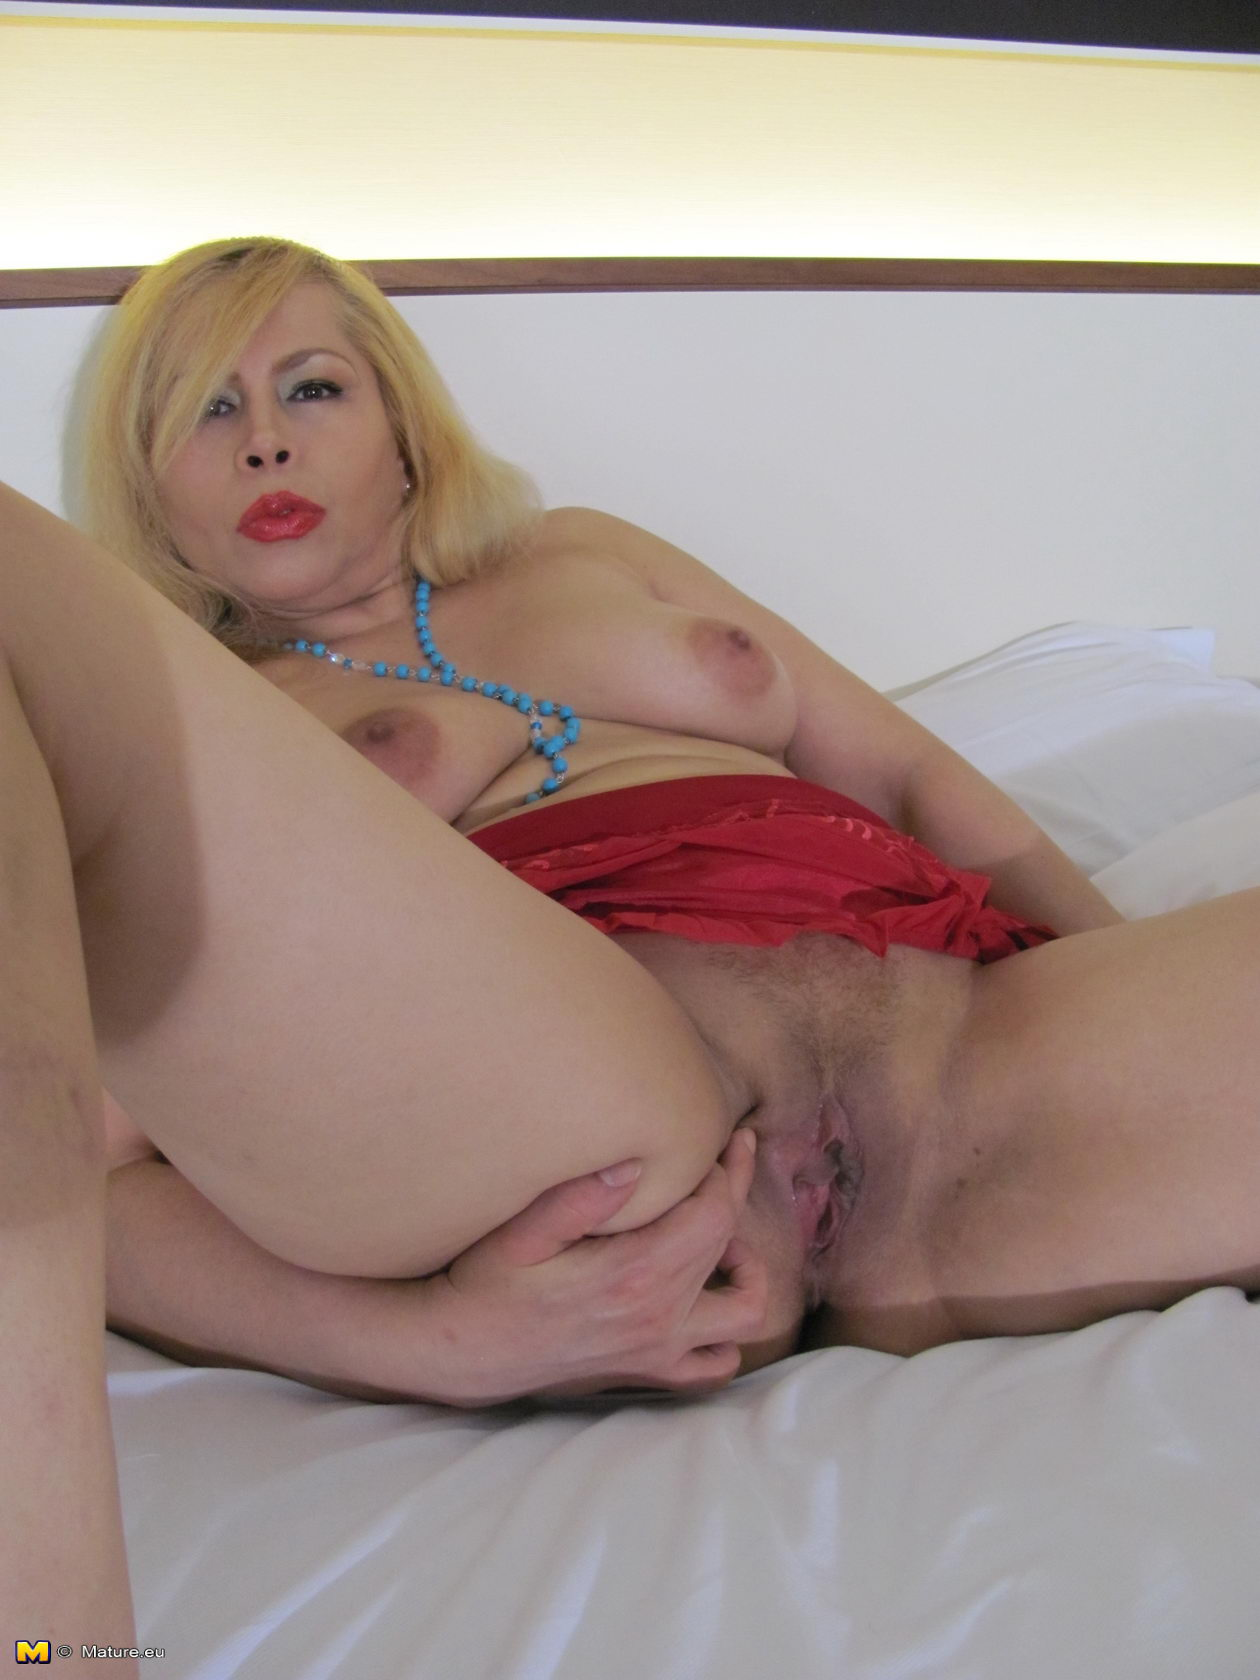 Mature blonde playing with her pussy casually